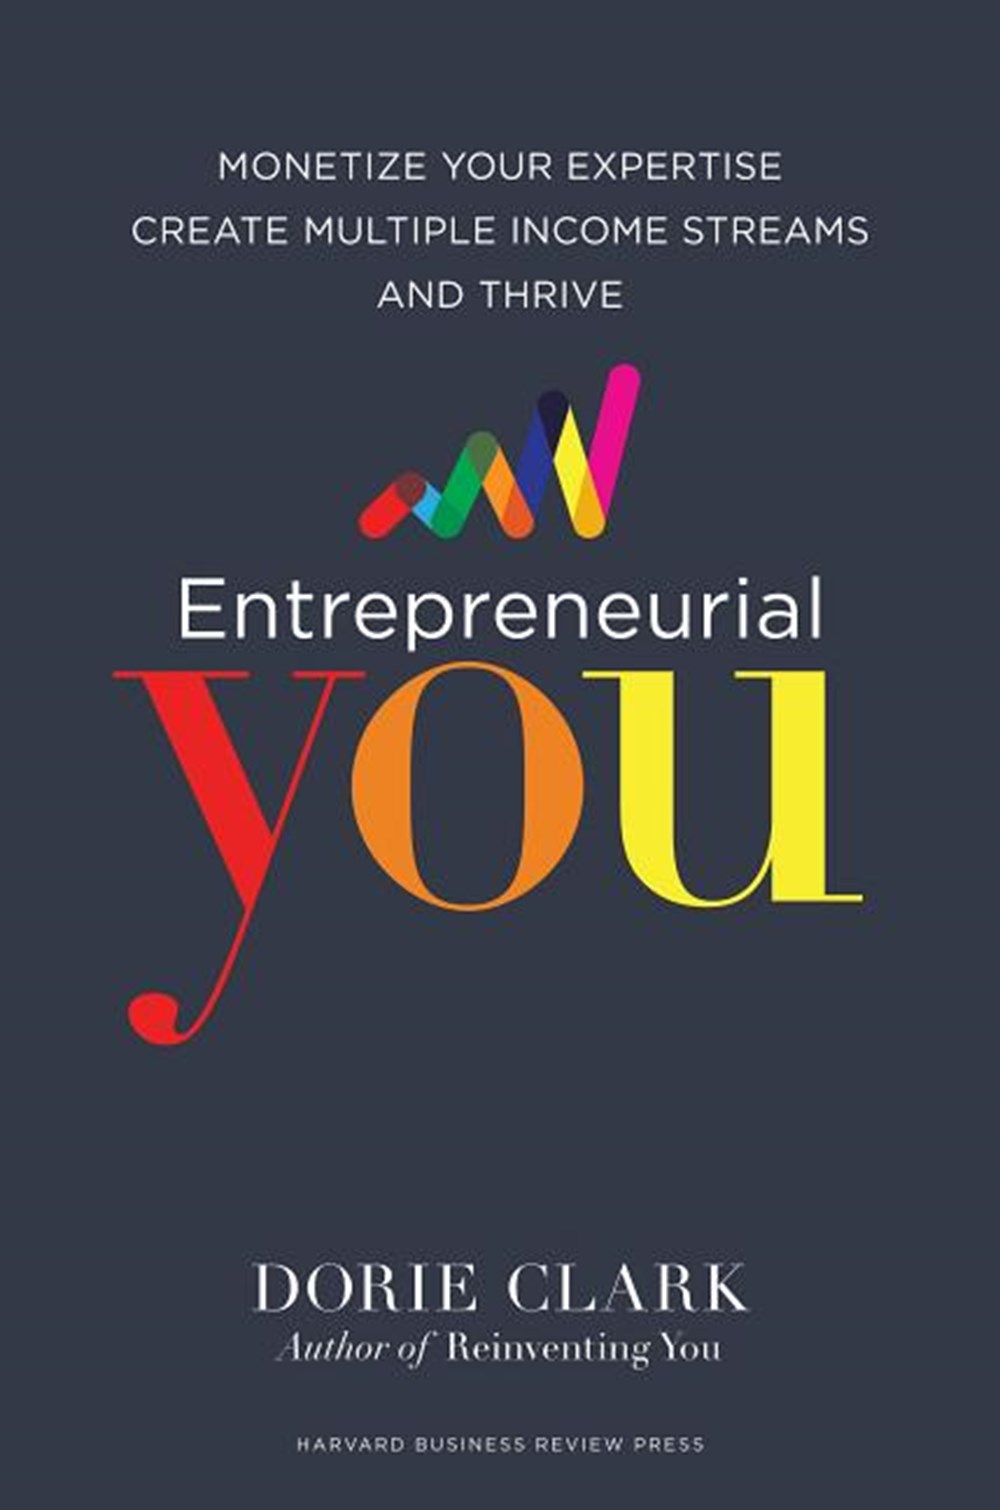 Entrepreneurial You Monetize Your Expertise, Create Multiple Income Streams, and Thrive